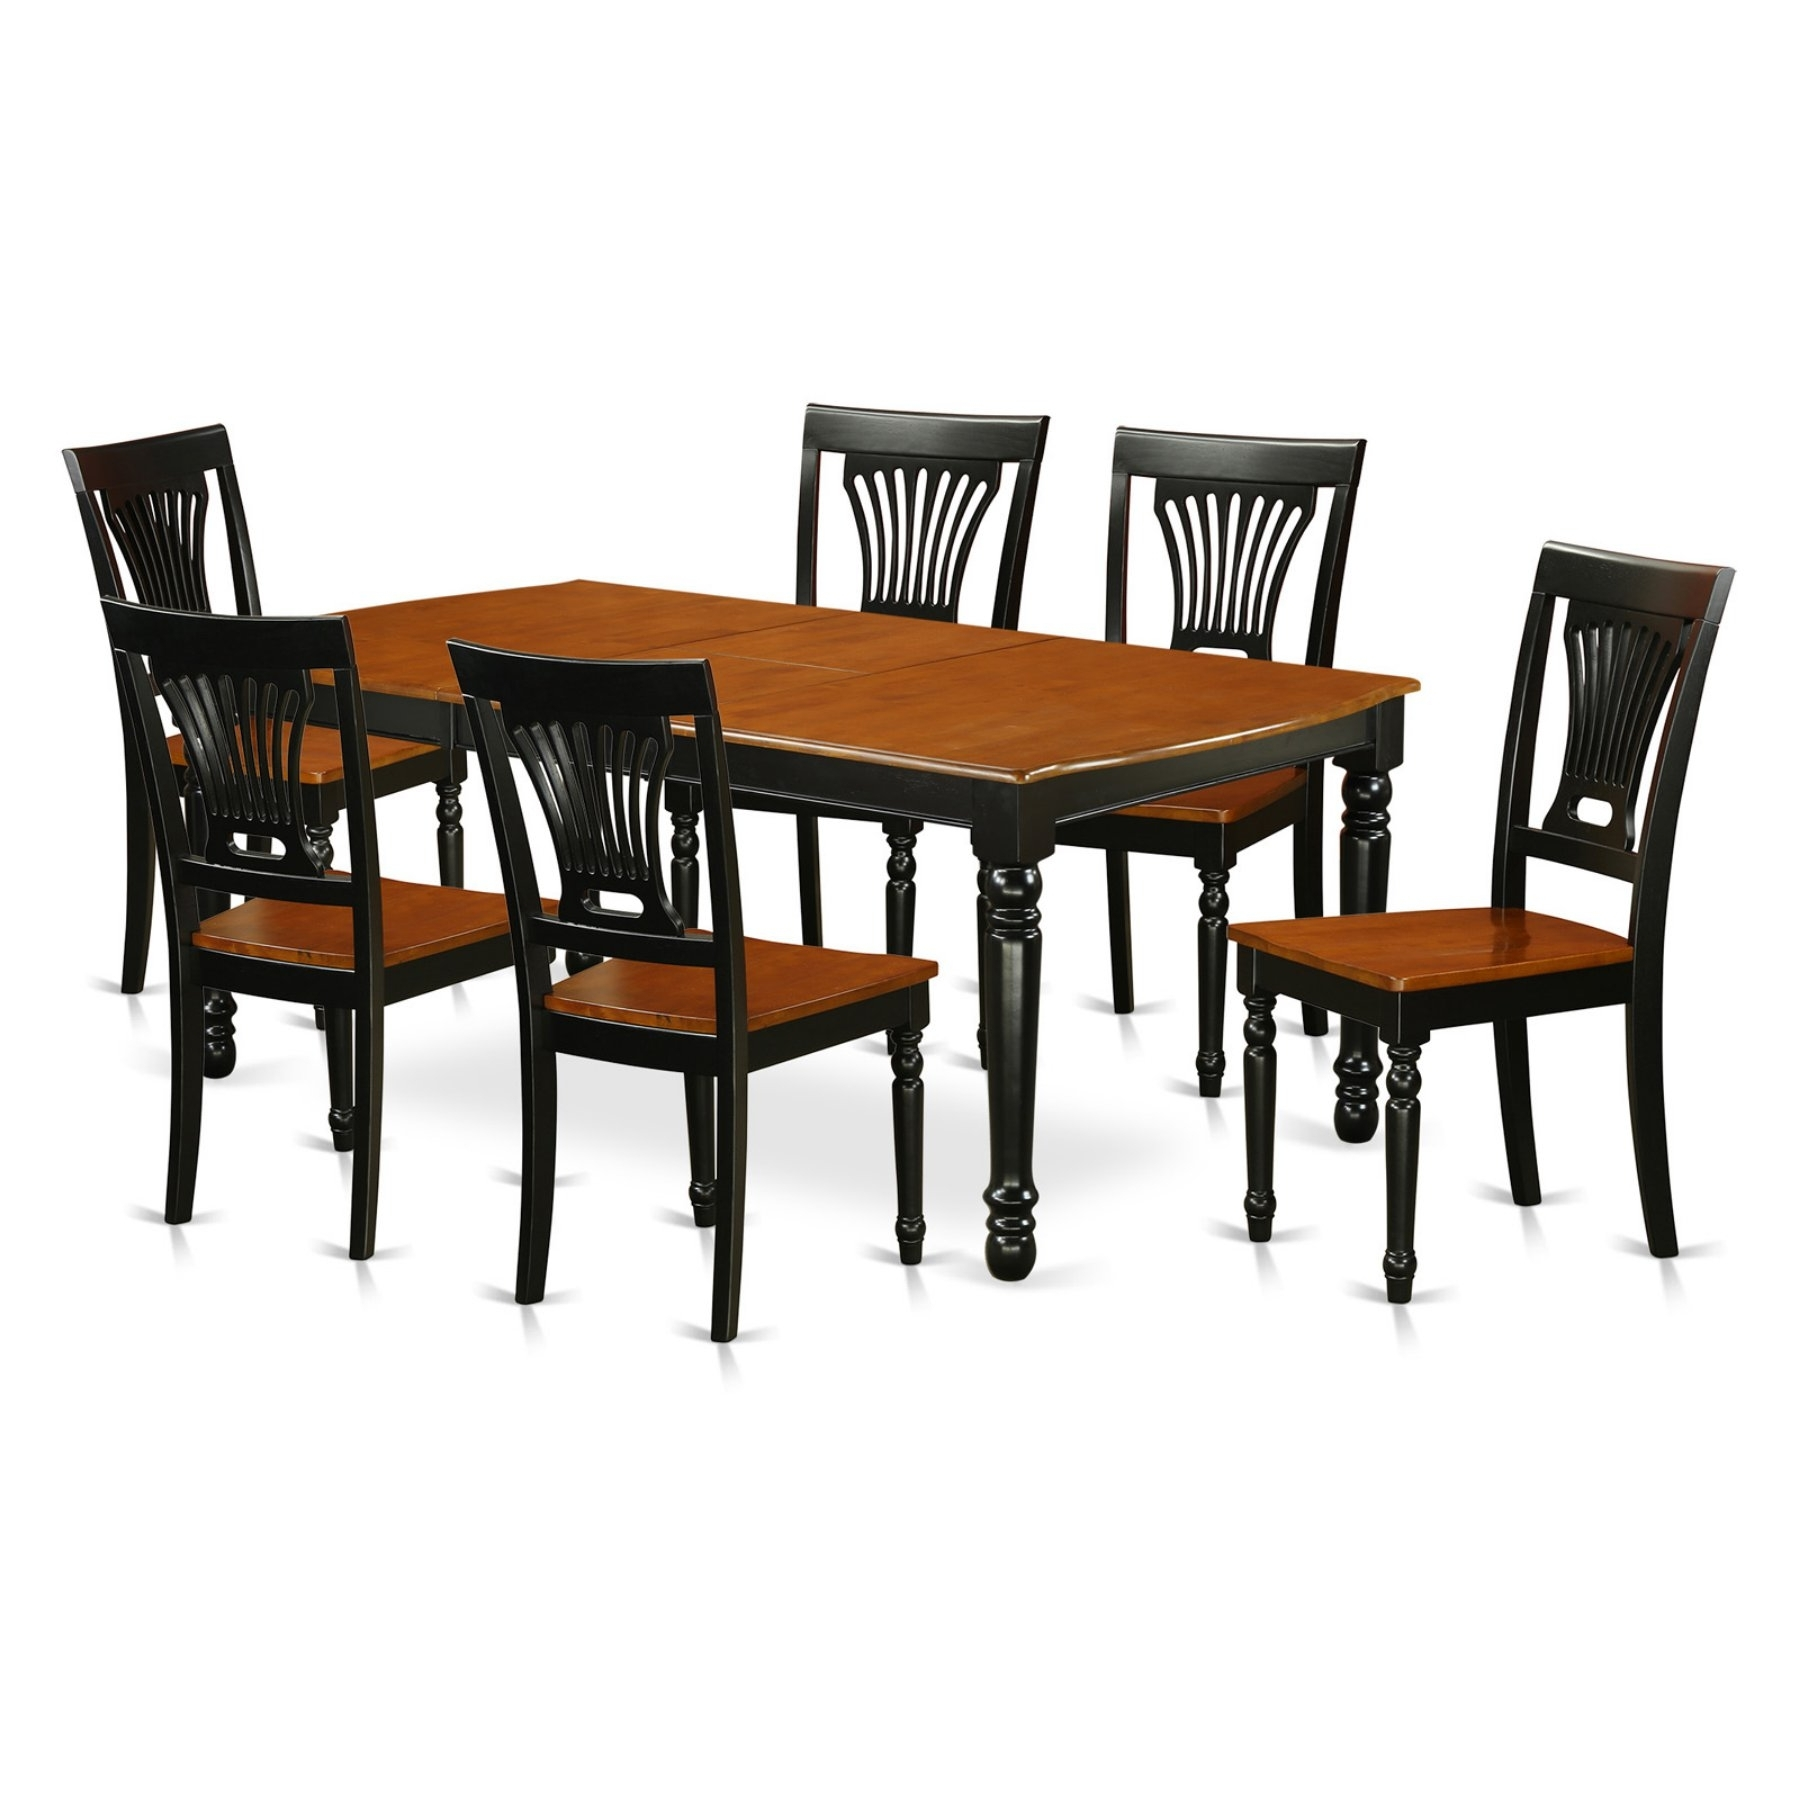 East West Furniture Dover Dopl7 Seven Piece Extension Dining Table in Most Current Parquet 6 Piece Dining Sets